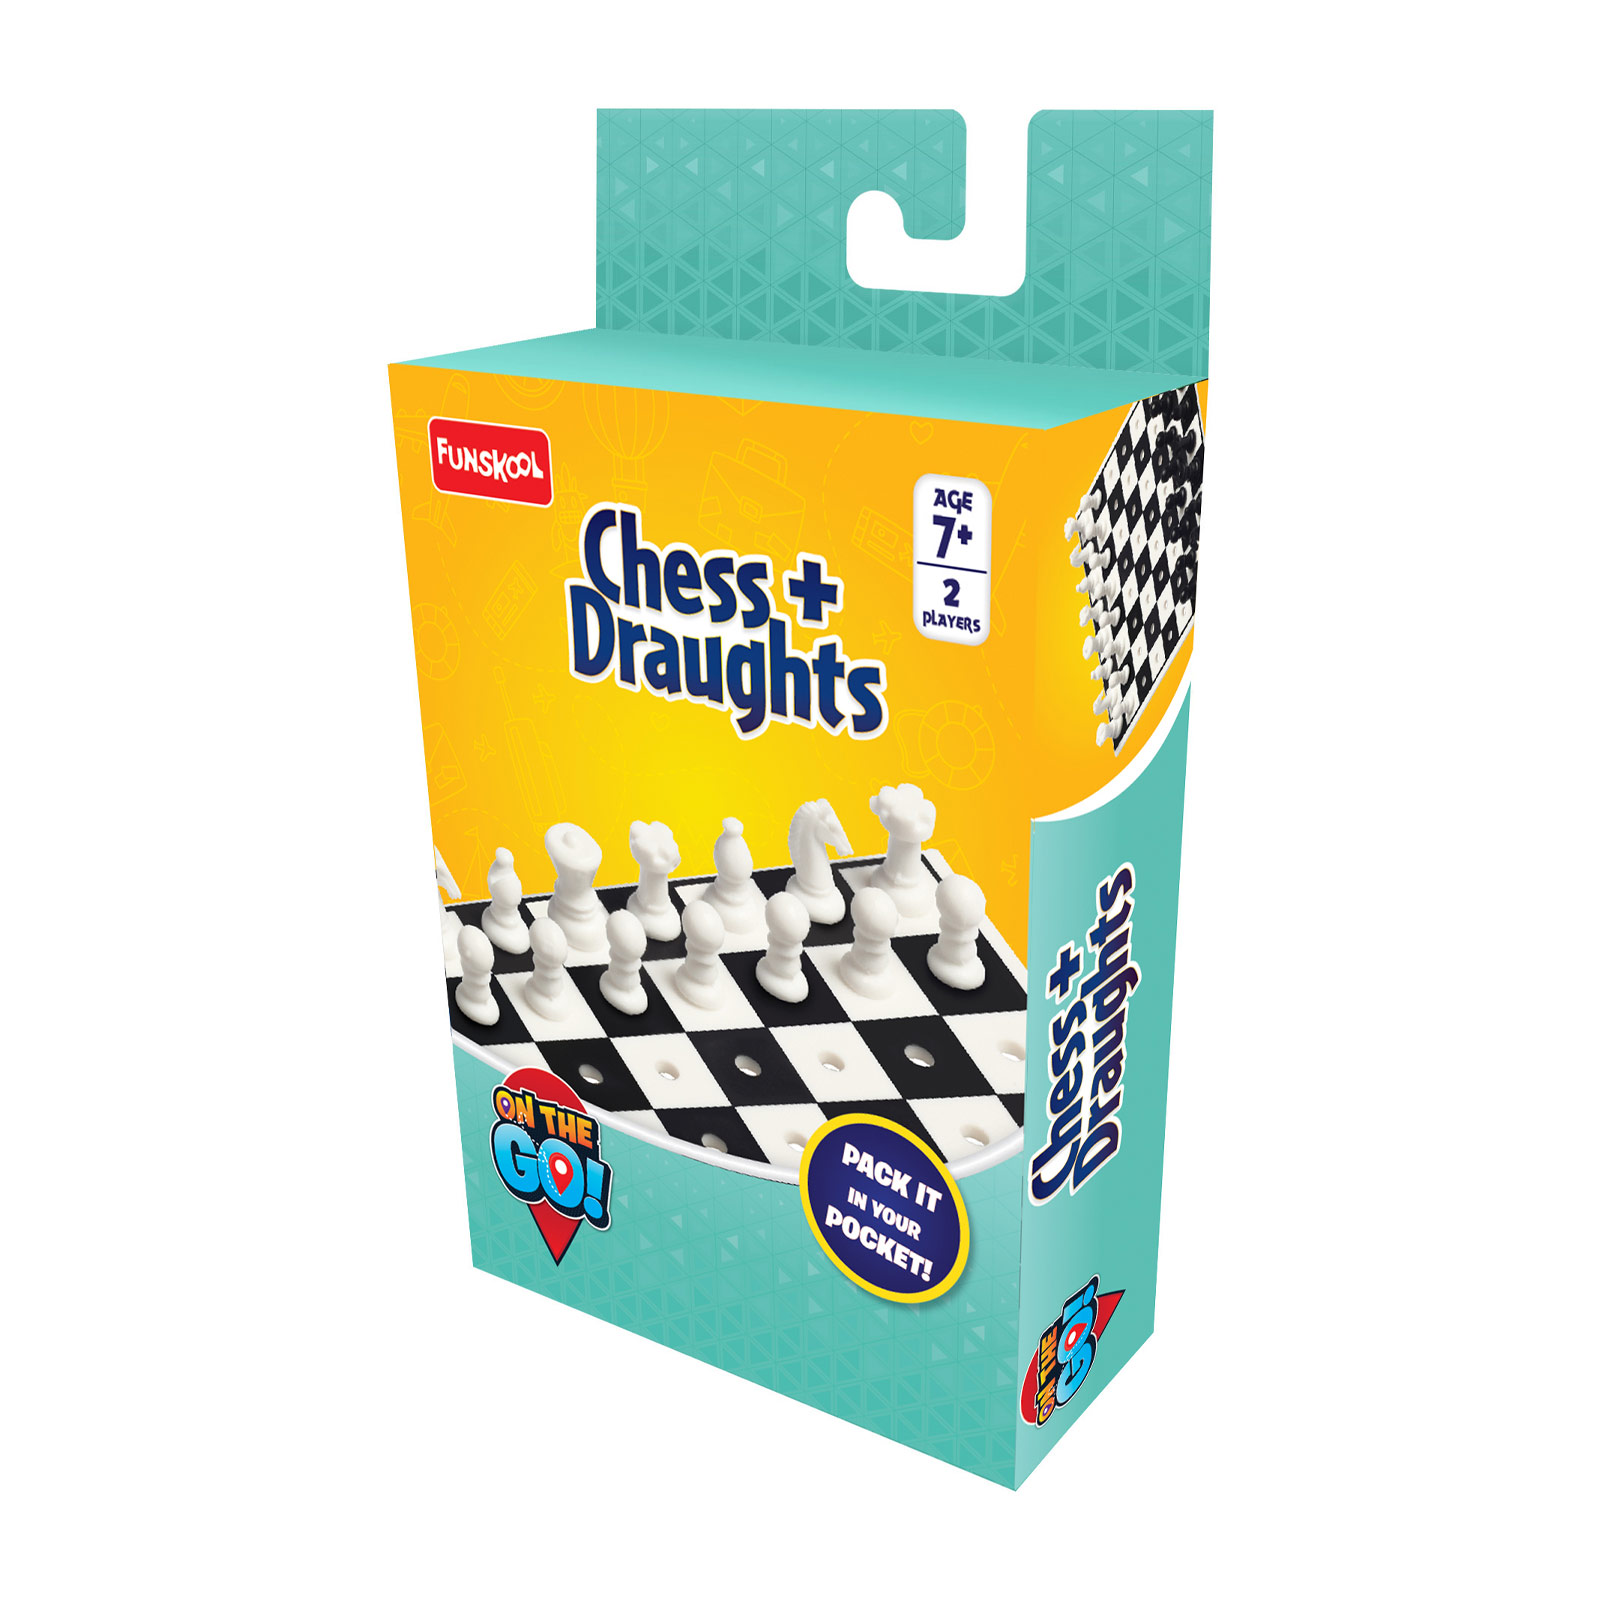 Travel Chess & Draughts